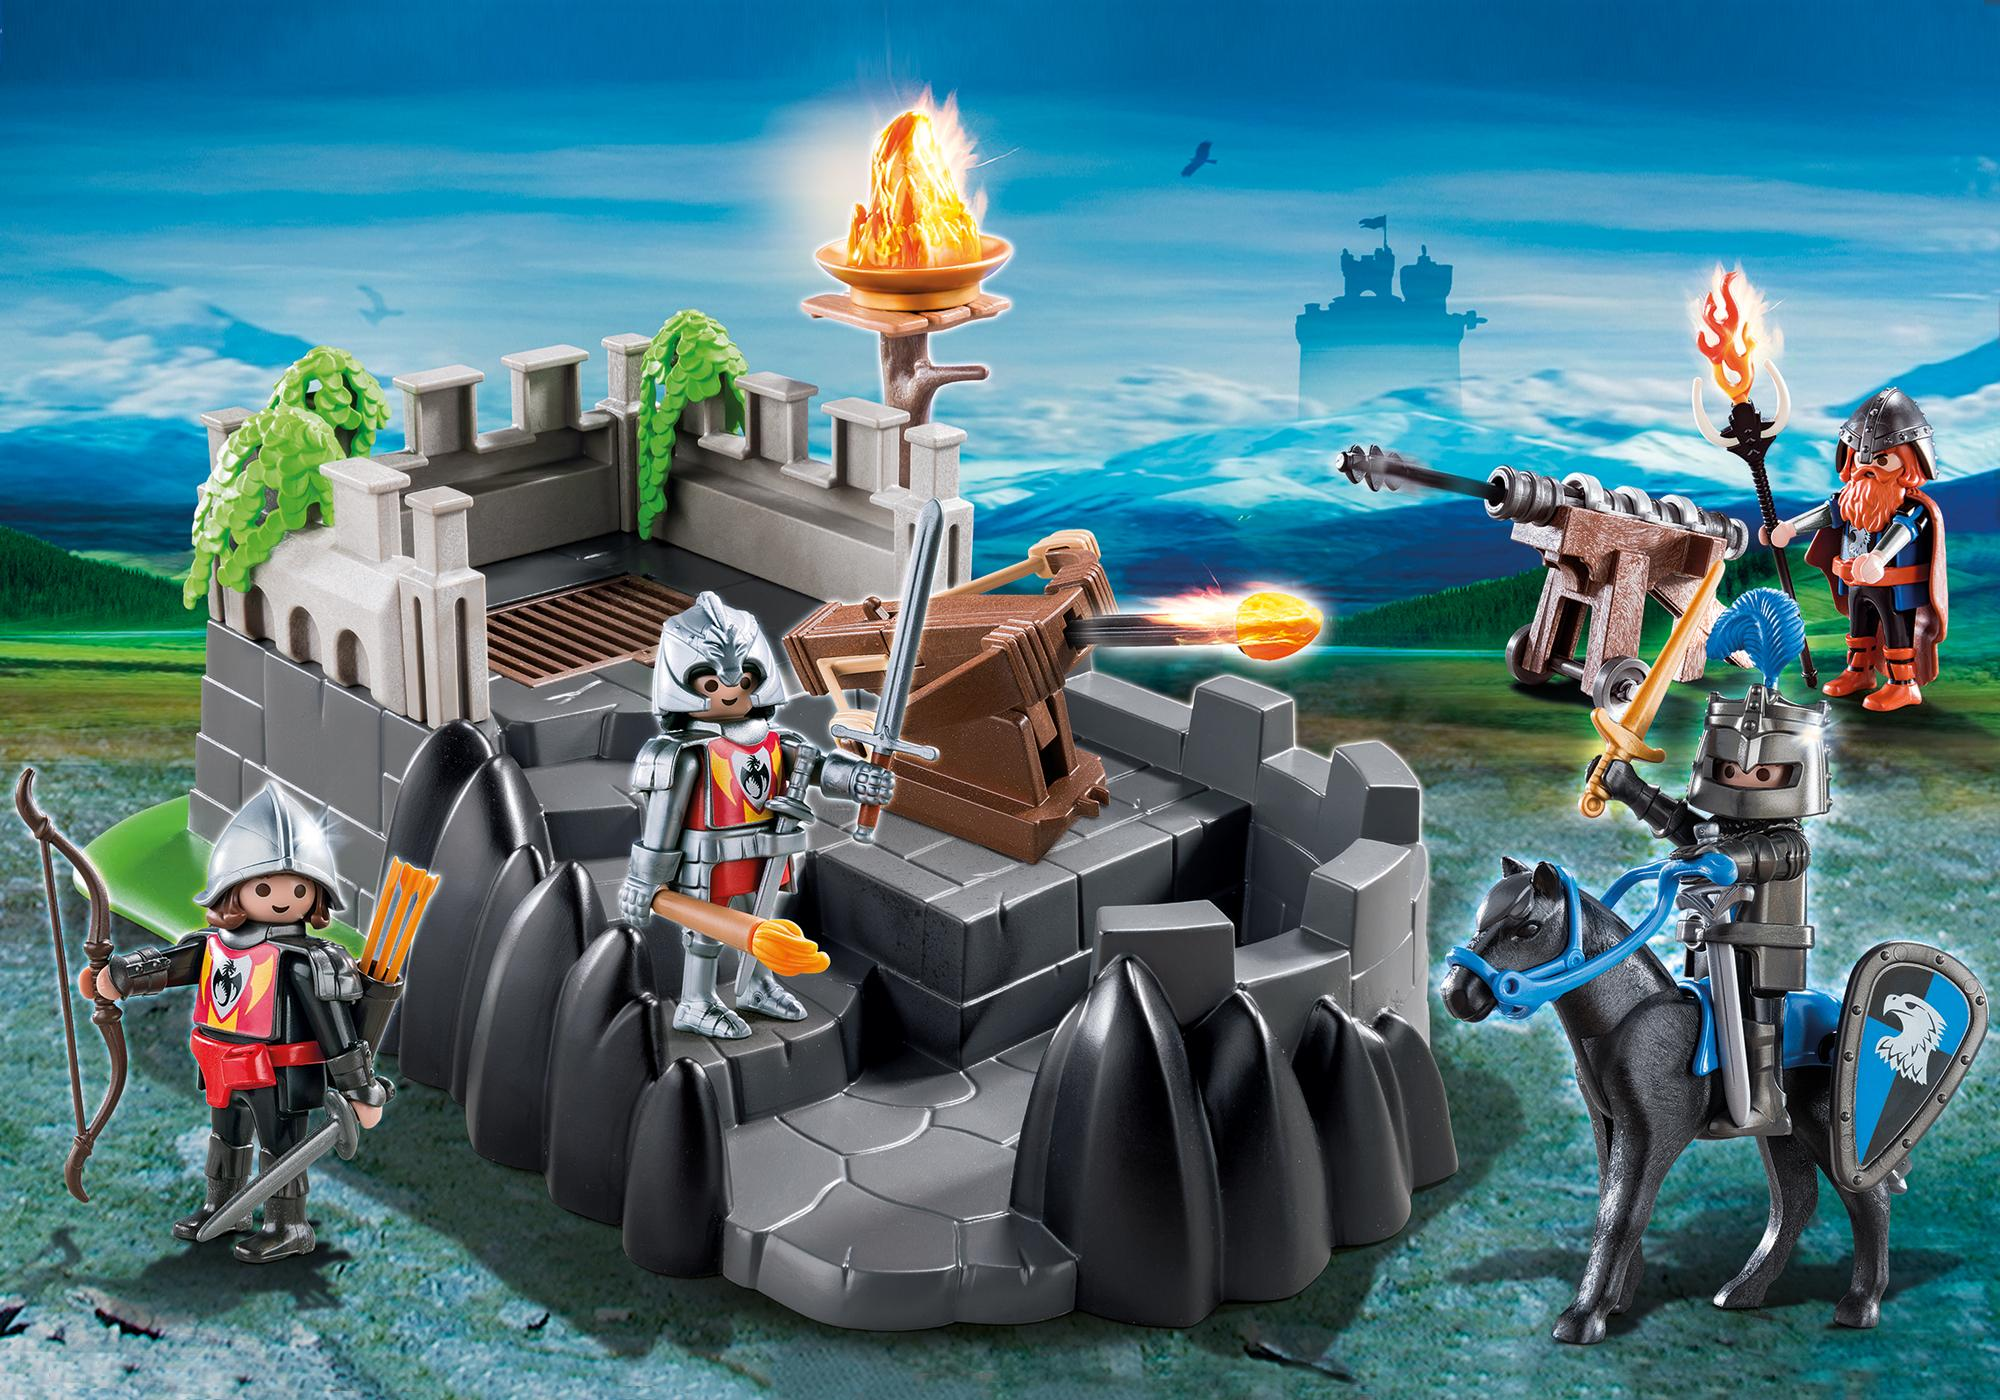 http://media.playmobil.com/i/playmobil/6627_product_detail/Bastion des chevaliers du Dragon Ailé